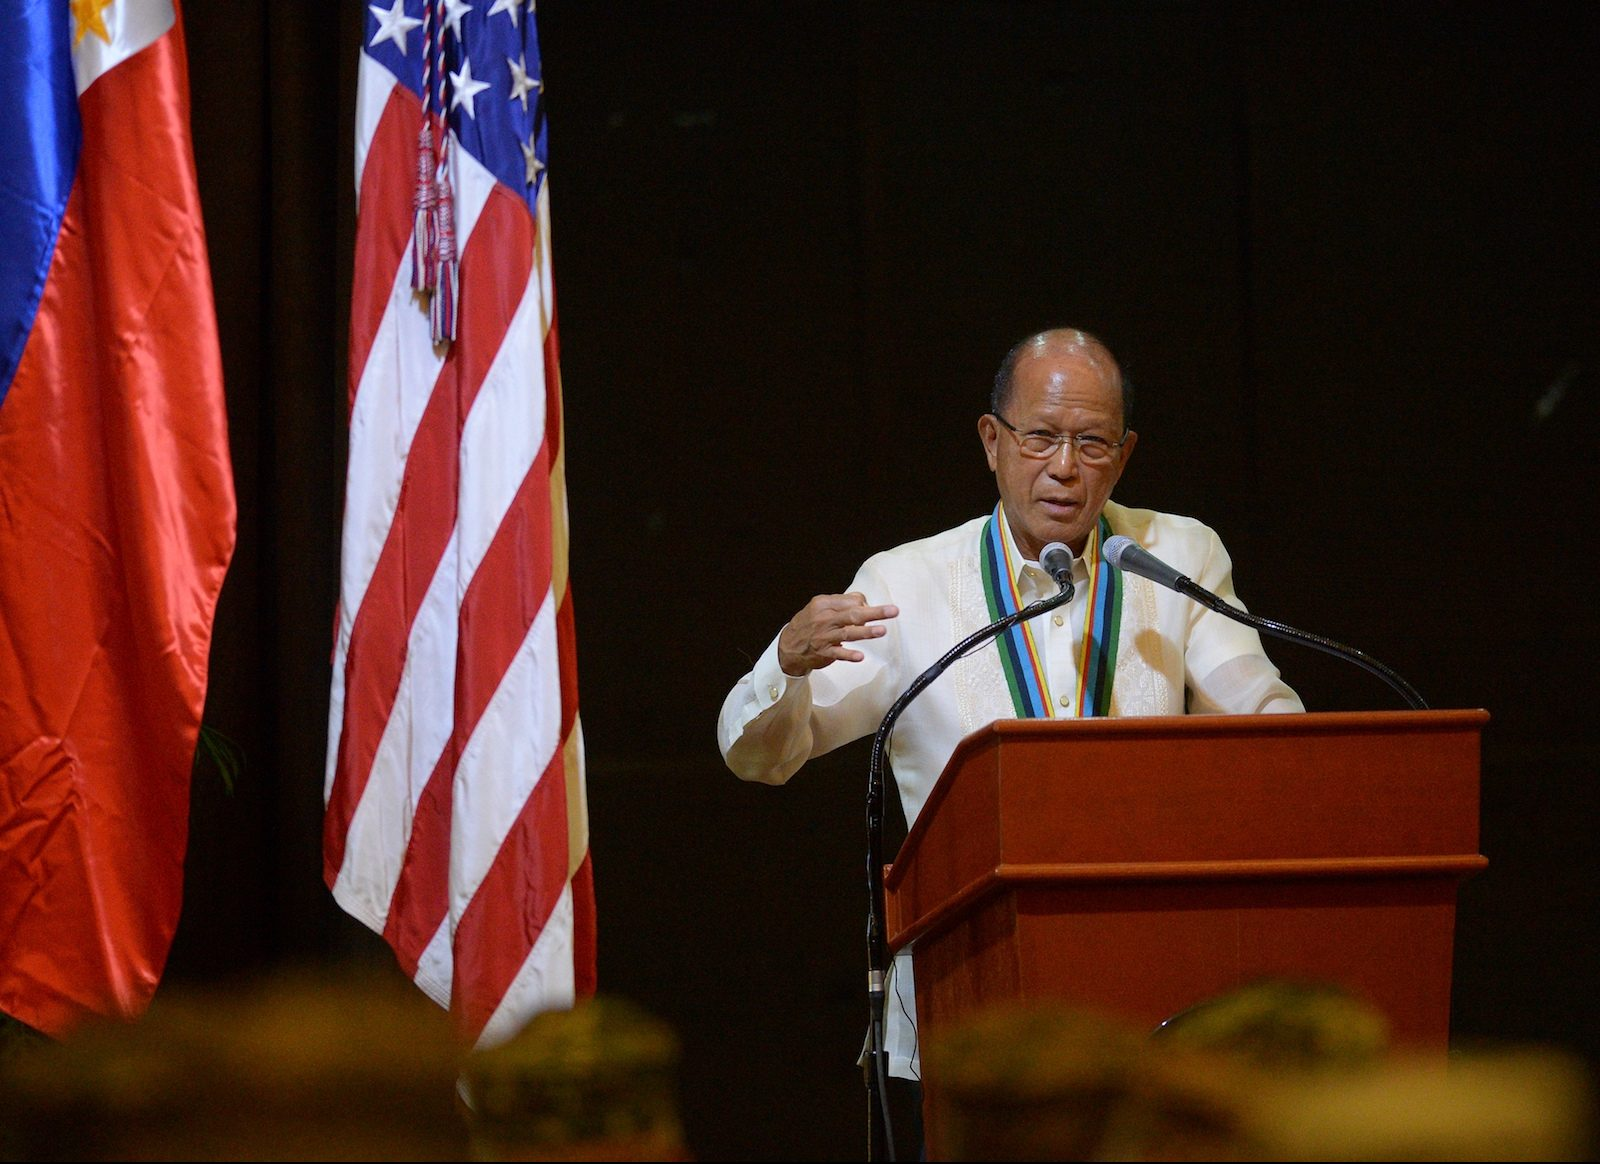 Duterte looks to boot US troops from Philippines